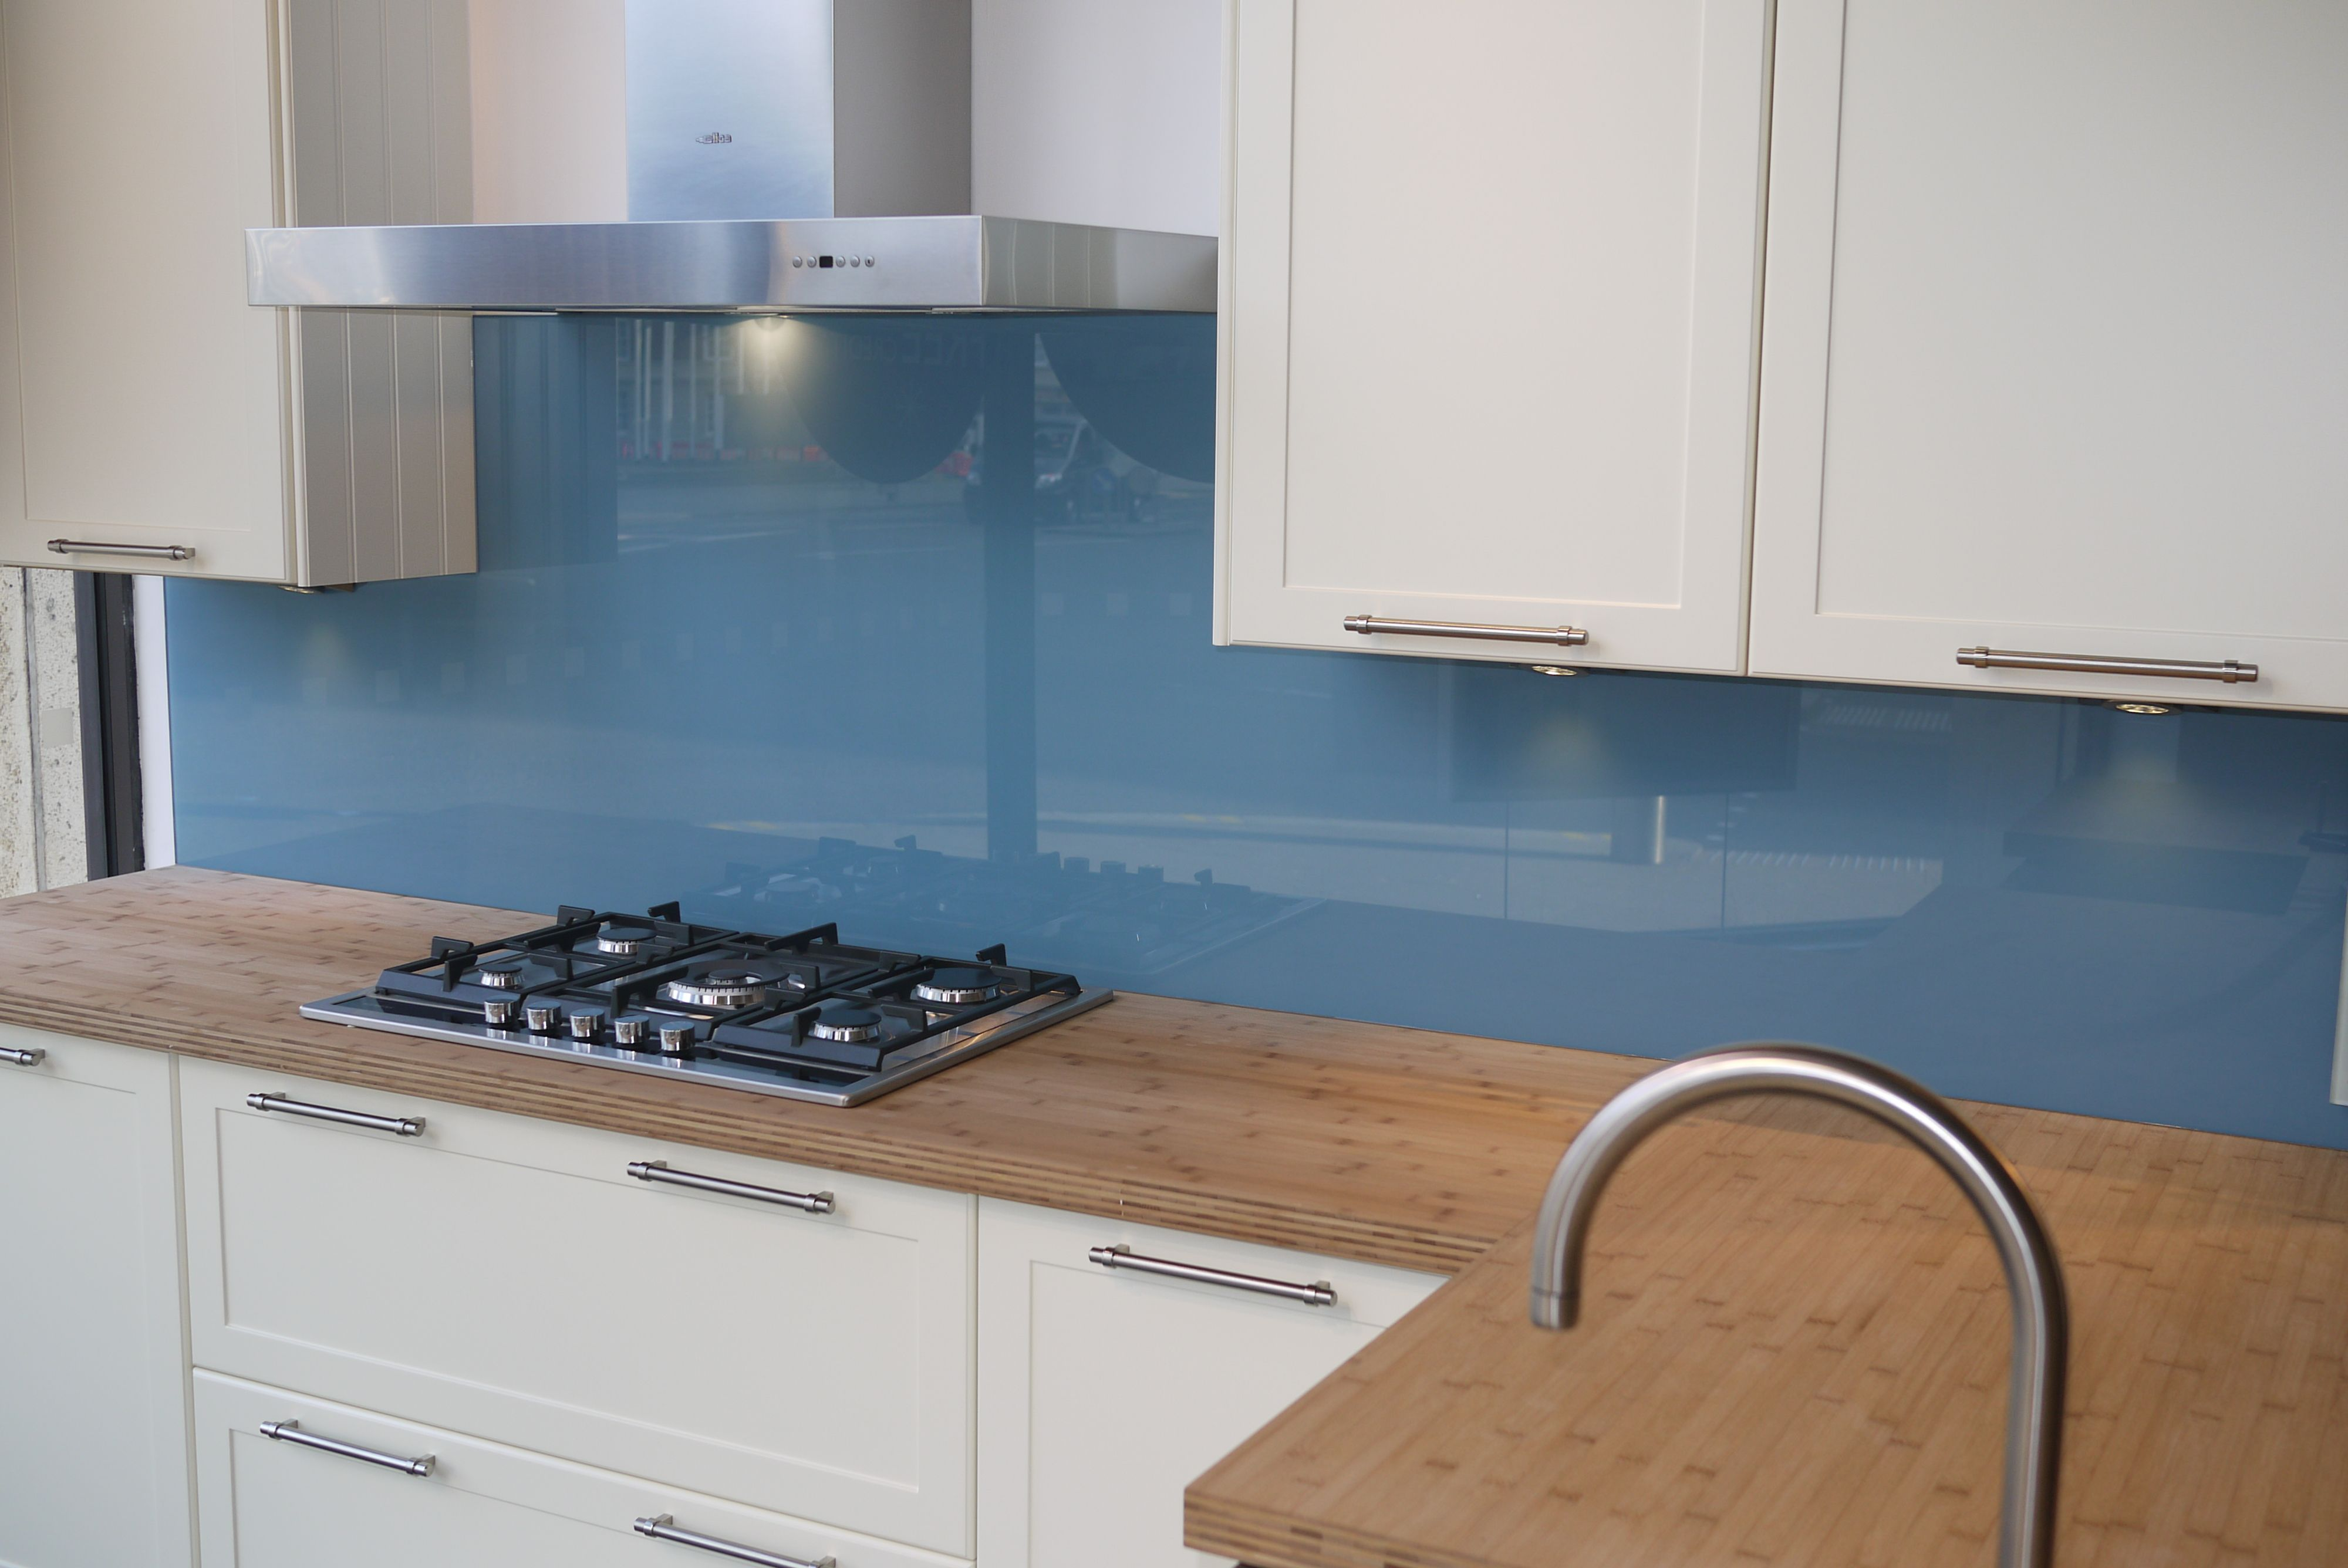 Küche Blau Holz Pale Blue Glass Splashback Set Against A Natural Block